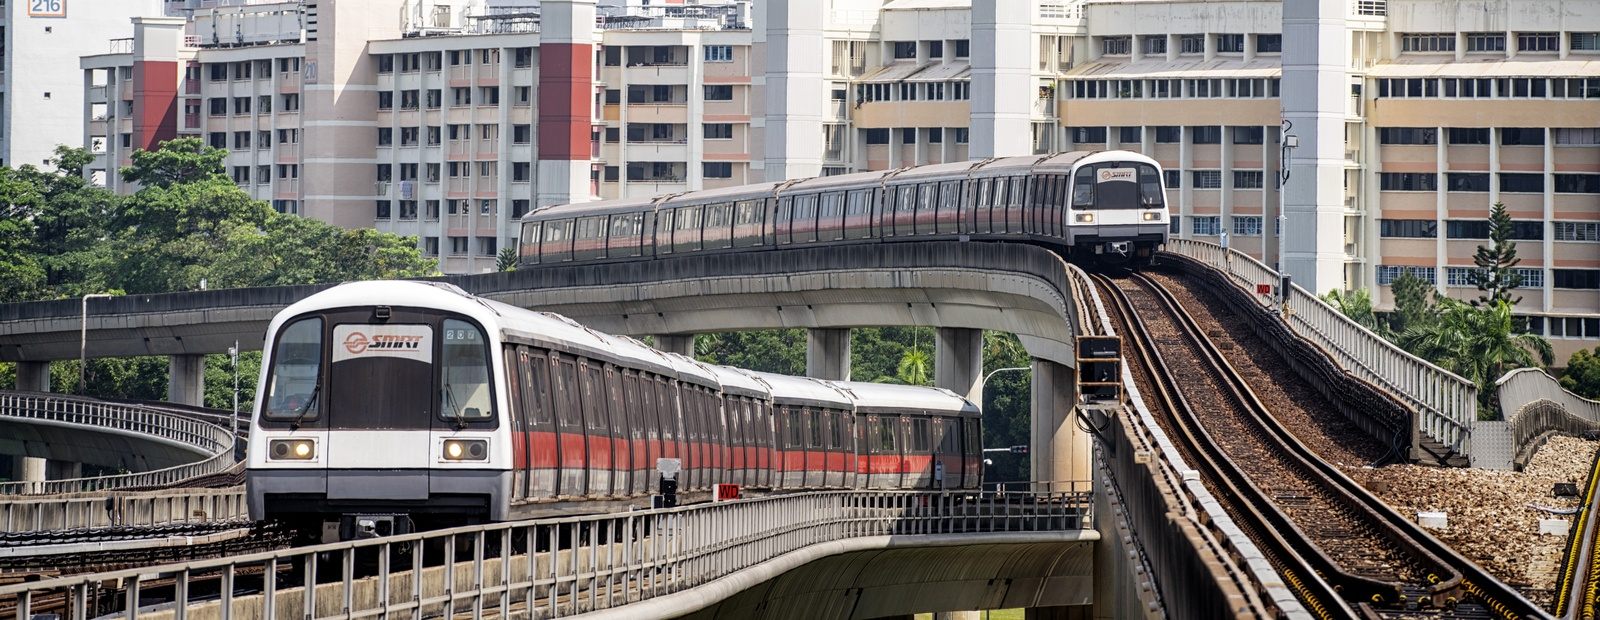 15 Innovative Conceptual Transit Oriented Designs around the world - Sheet26